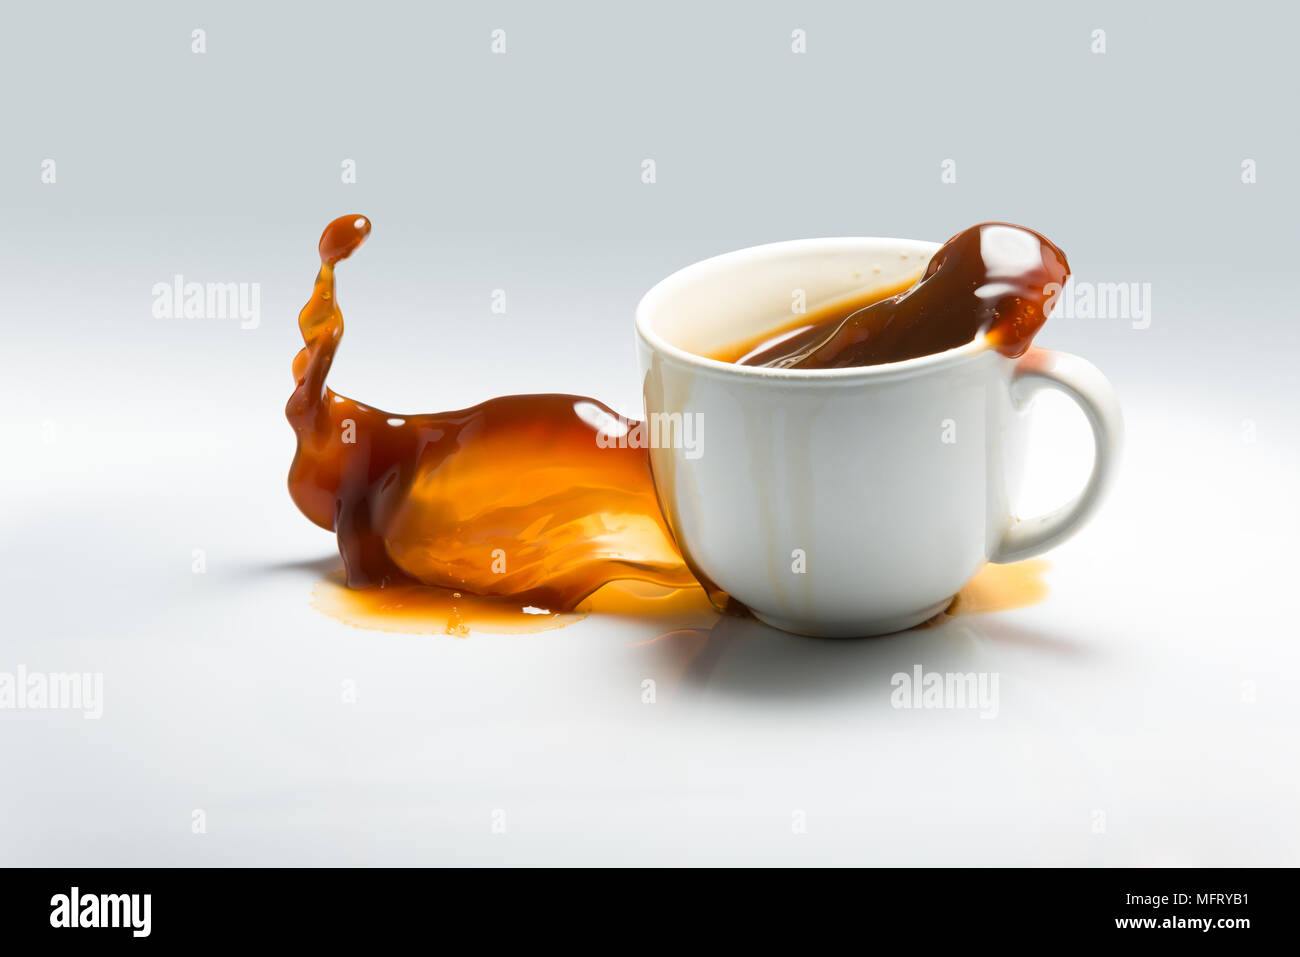 Falling and spilling of a cup of coffee against a white background - Stock Image